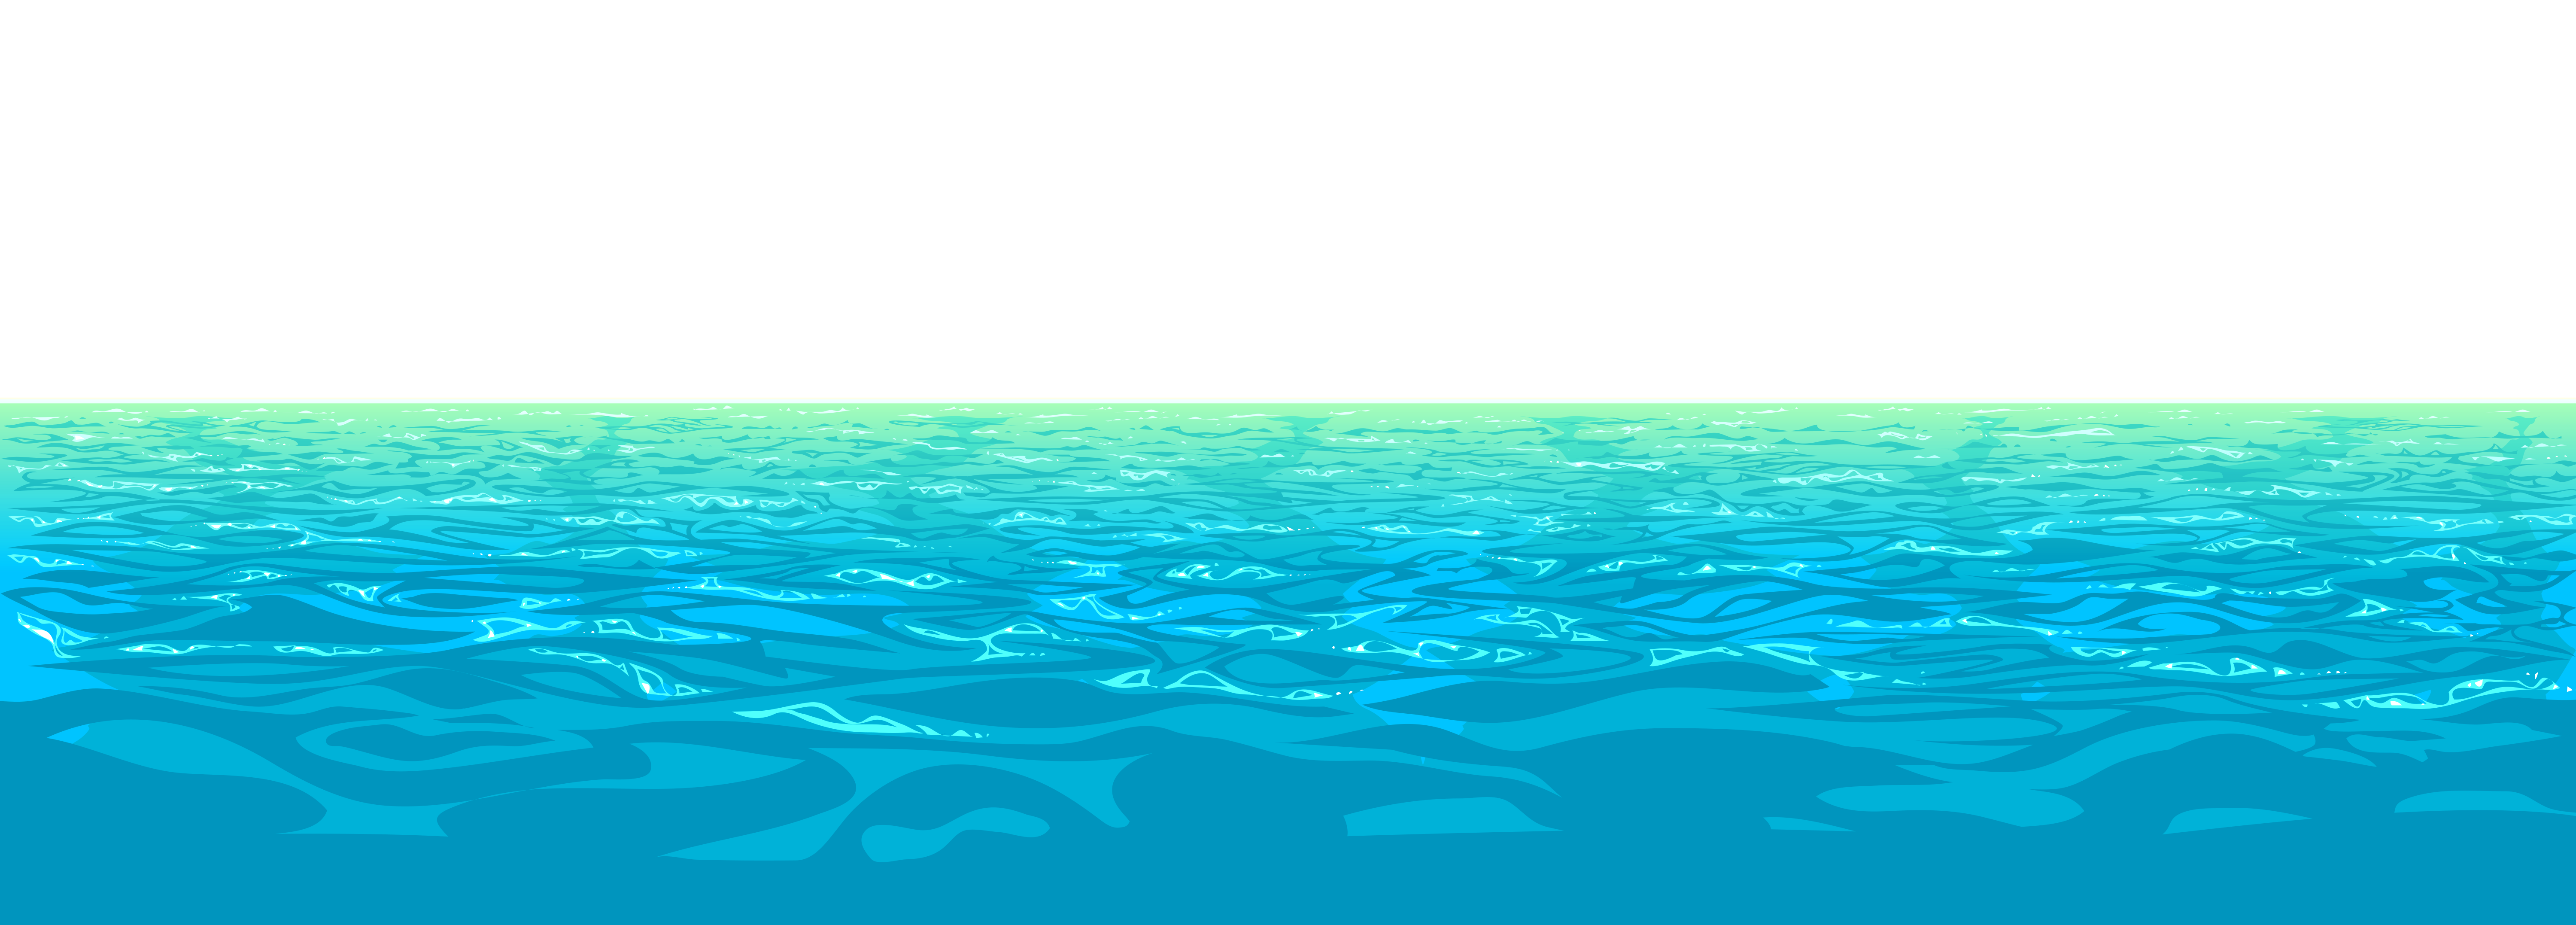 Ocean clipart transparent And Clipart Cliparts Ocean Blue